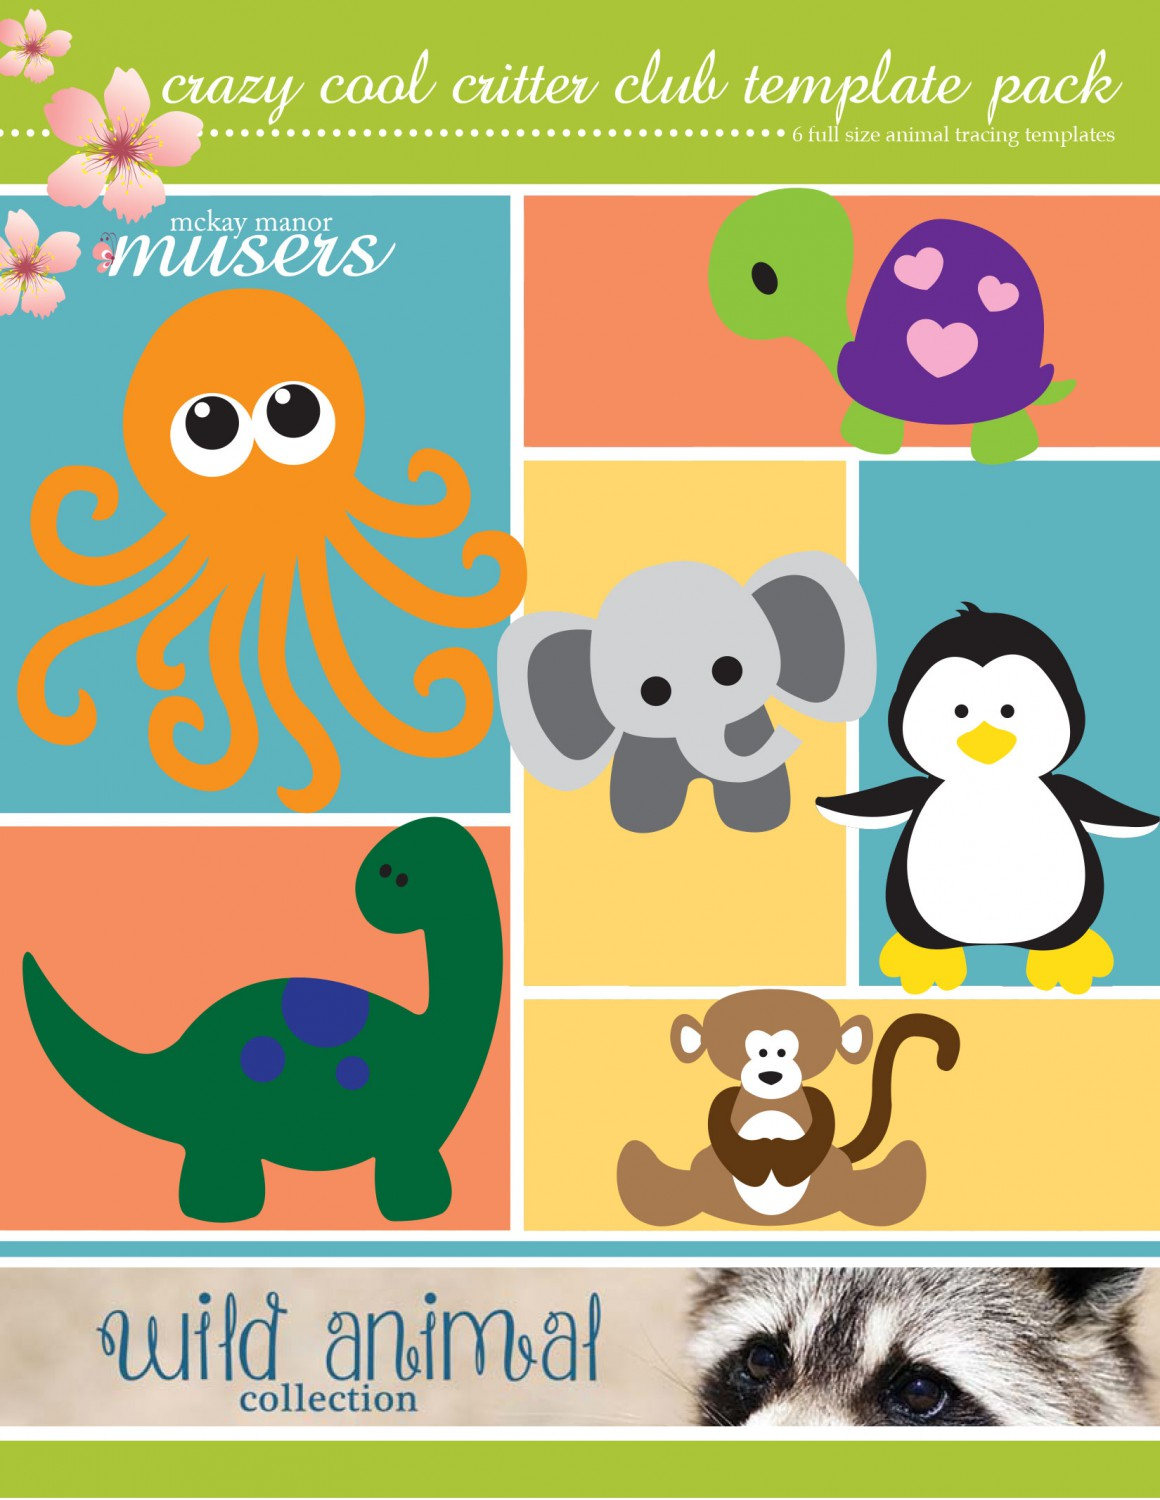 Crazy Cool Critter Templates - Wild Animal Collection